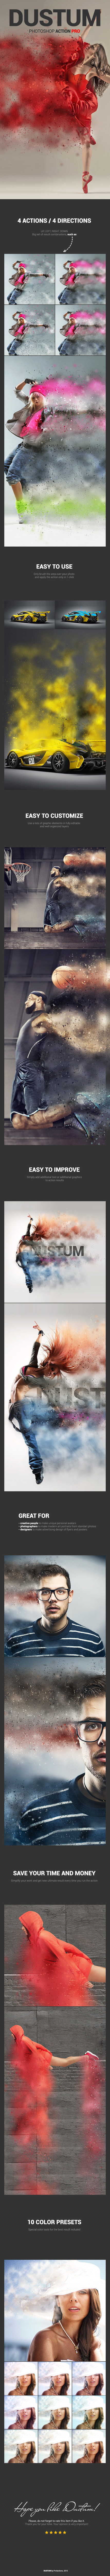 GraphicRiver Dustum PS Action 11589536